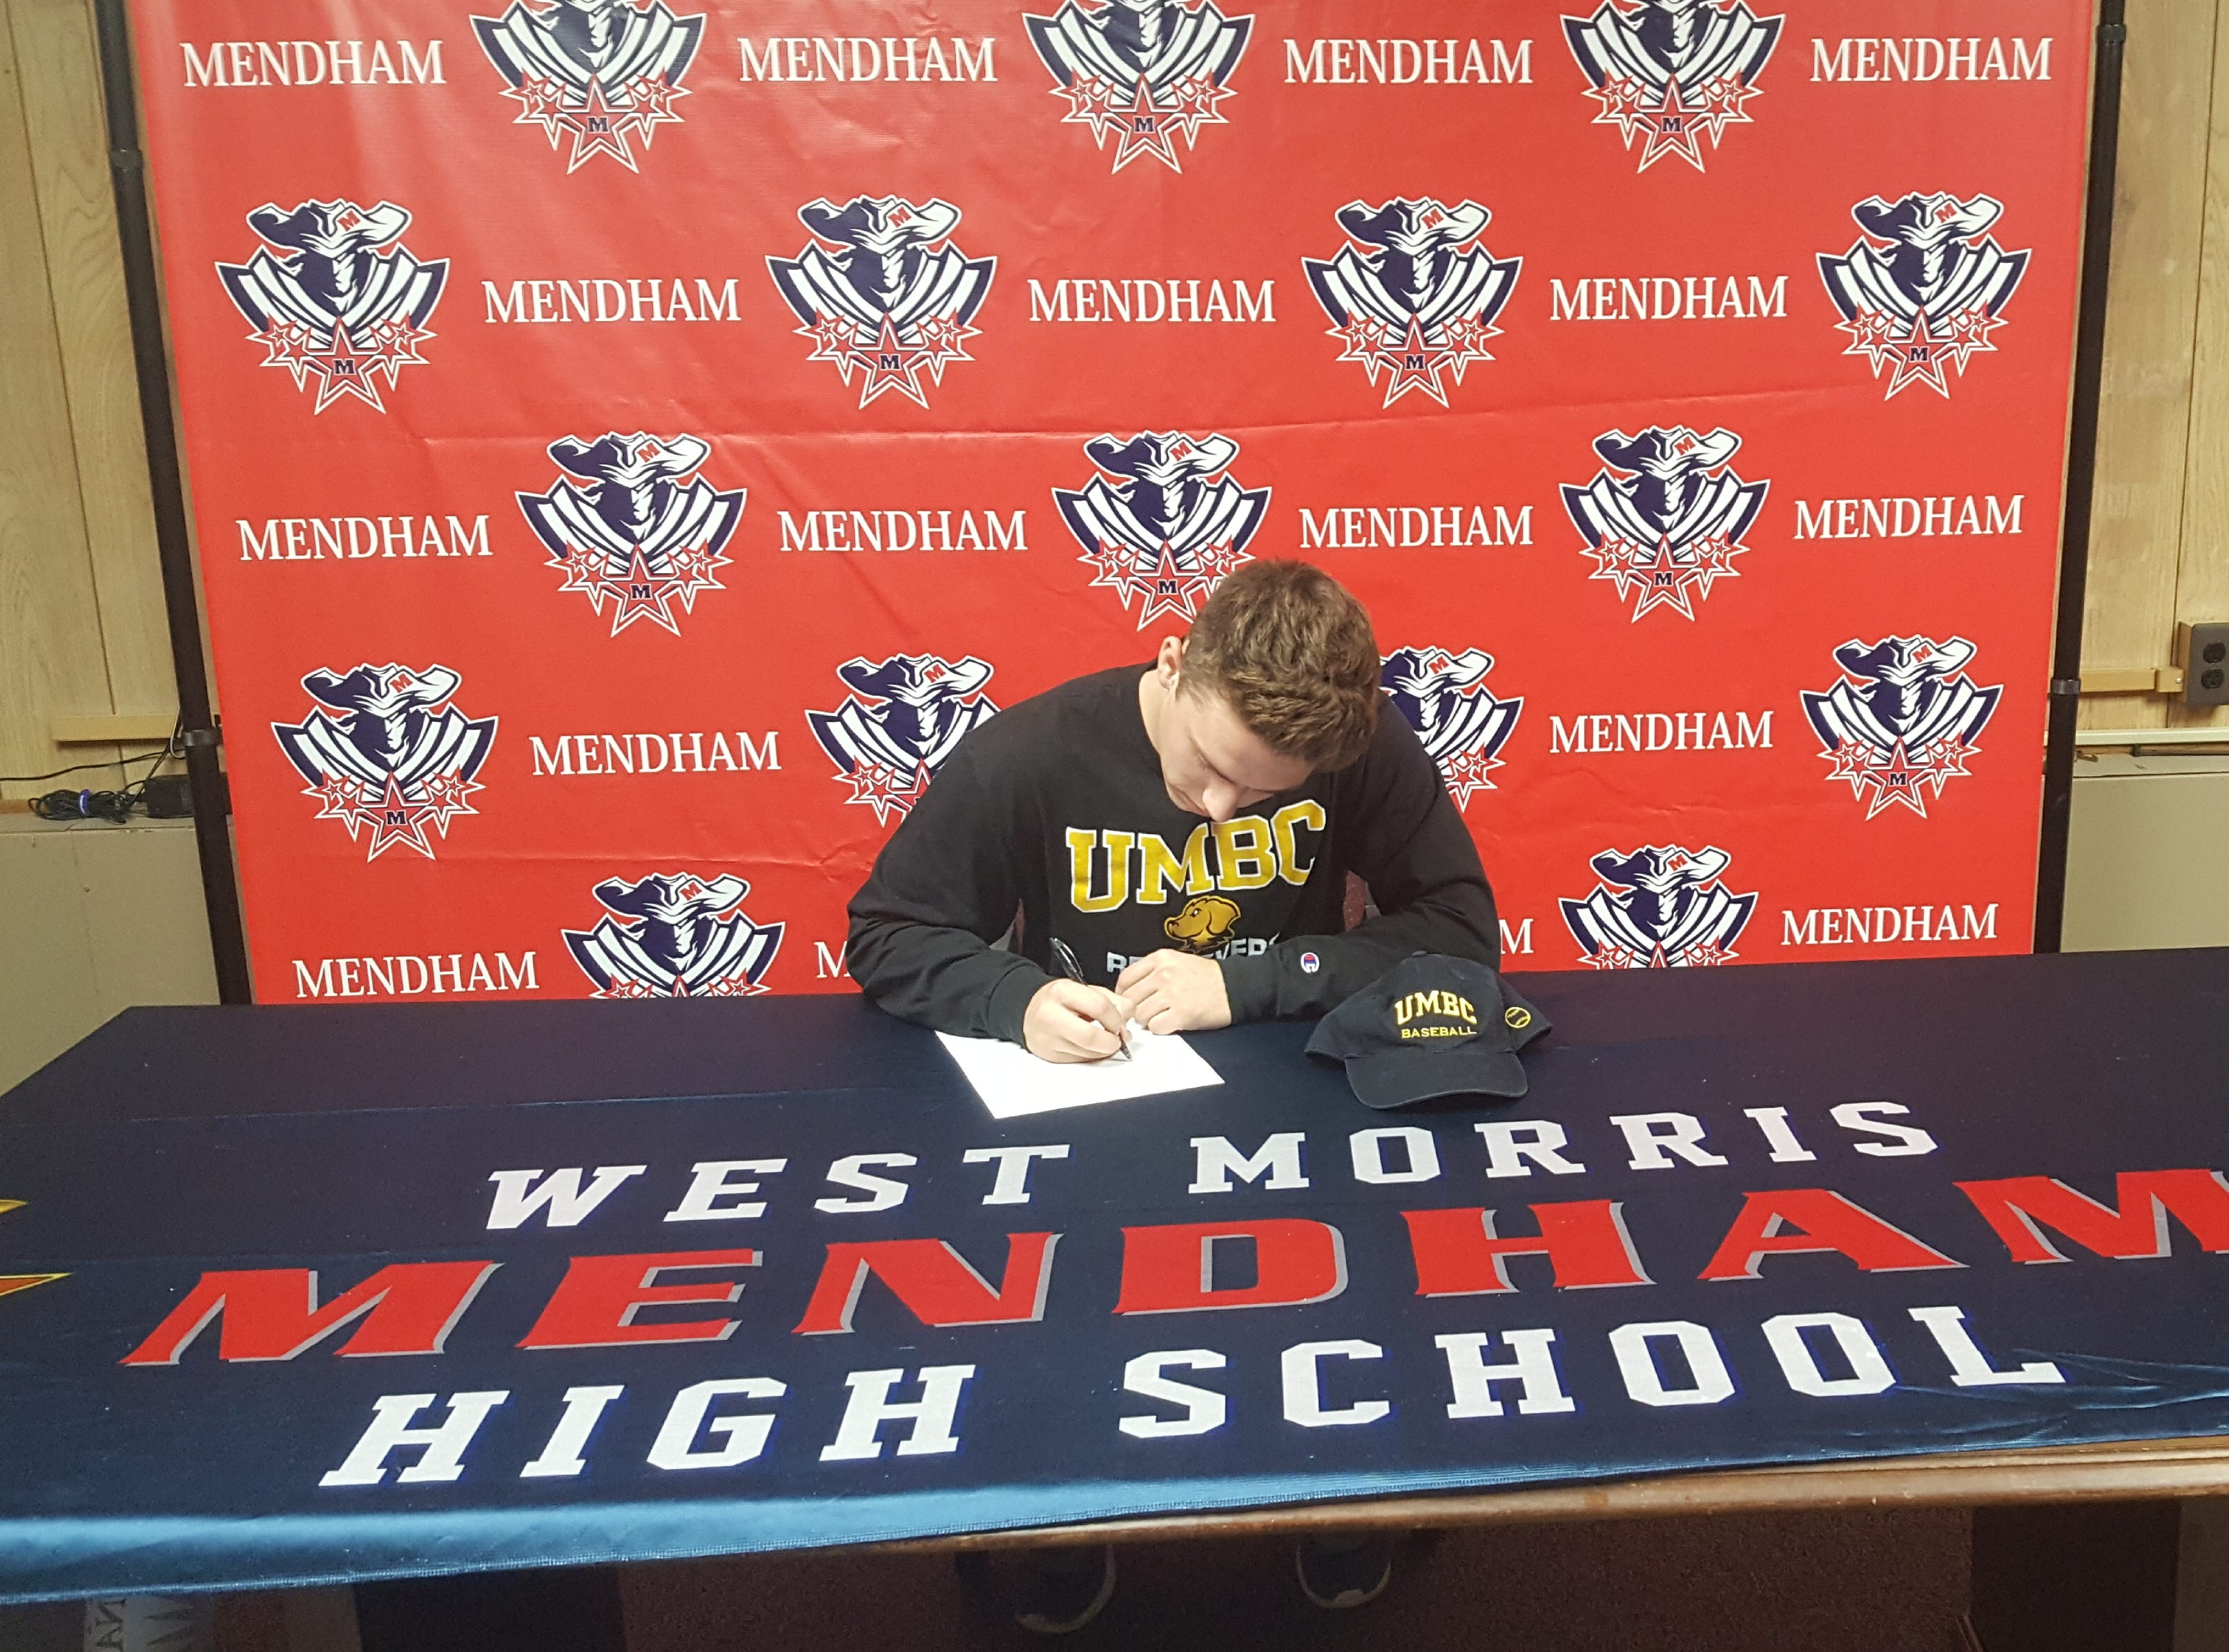 Mendham senior Michael Cilio signed a National Letter of Intent with Maryland-Baltimore County baseball.